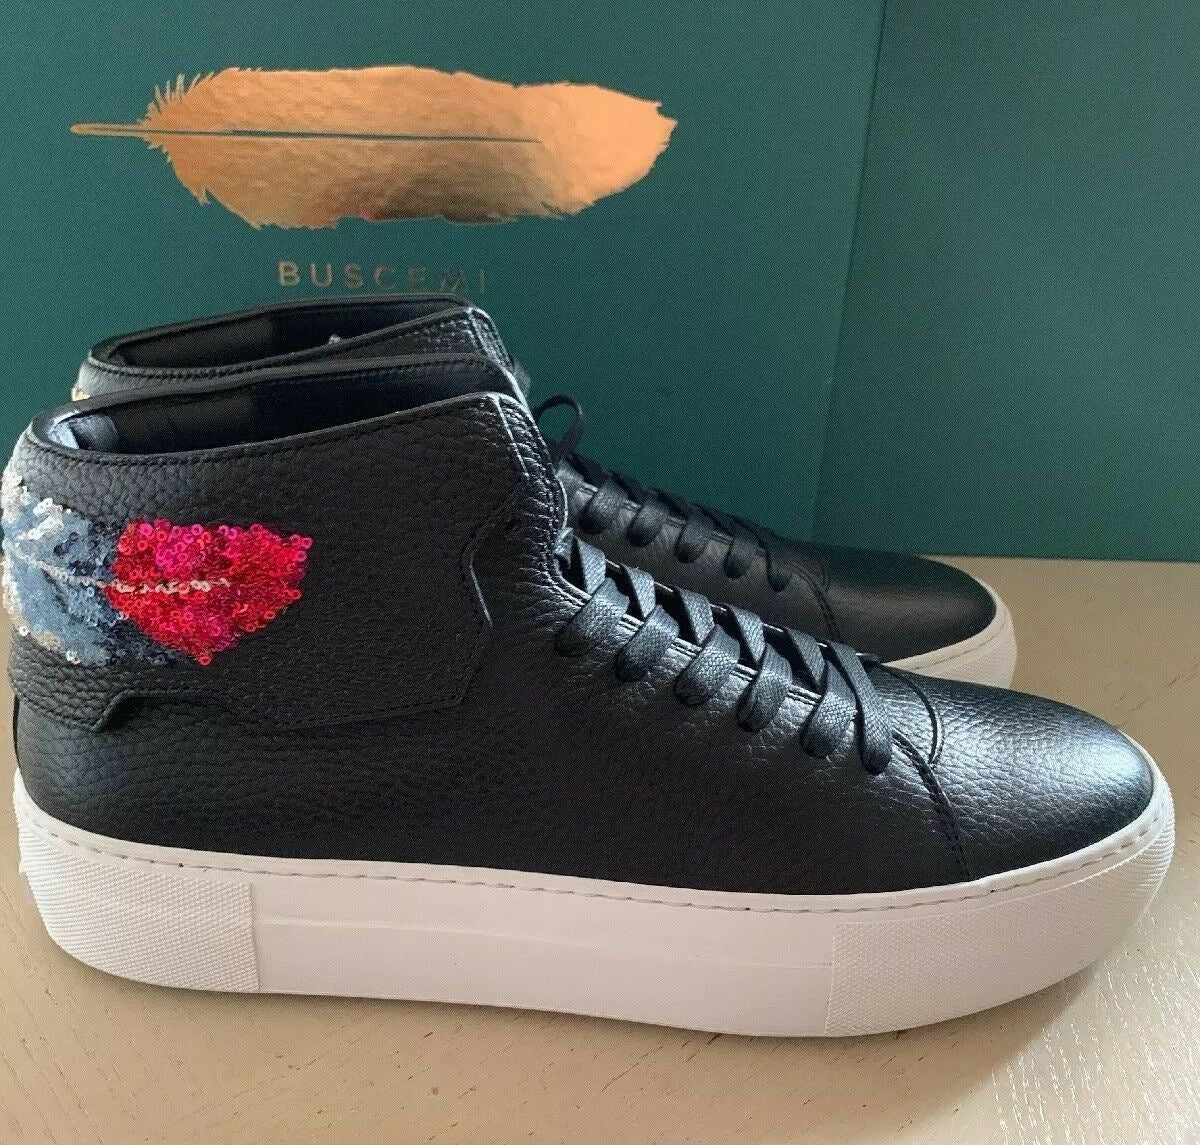 New $1560 BUSCEMI Men Leather High-Top Sneakers Black 9 US ( 42 Eu ) 1090LS16